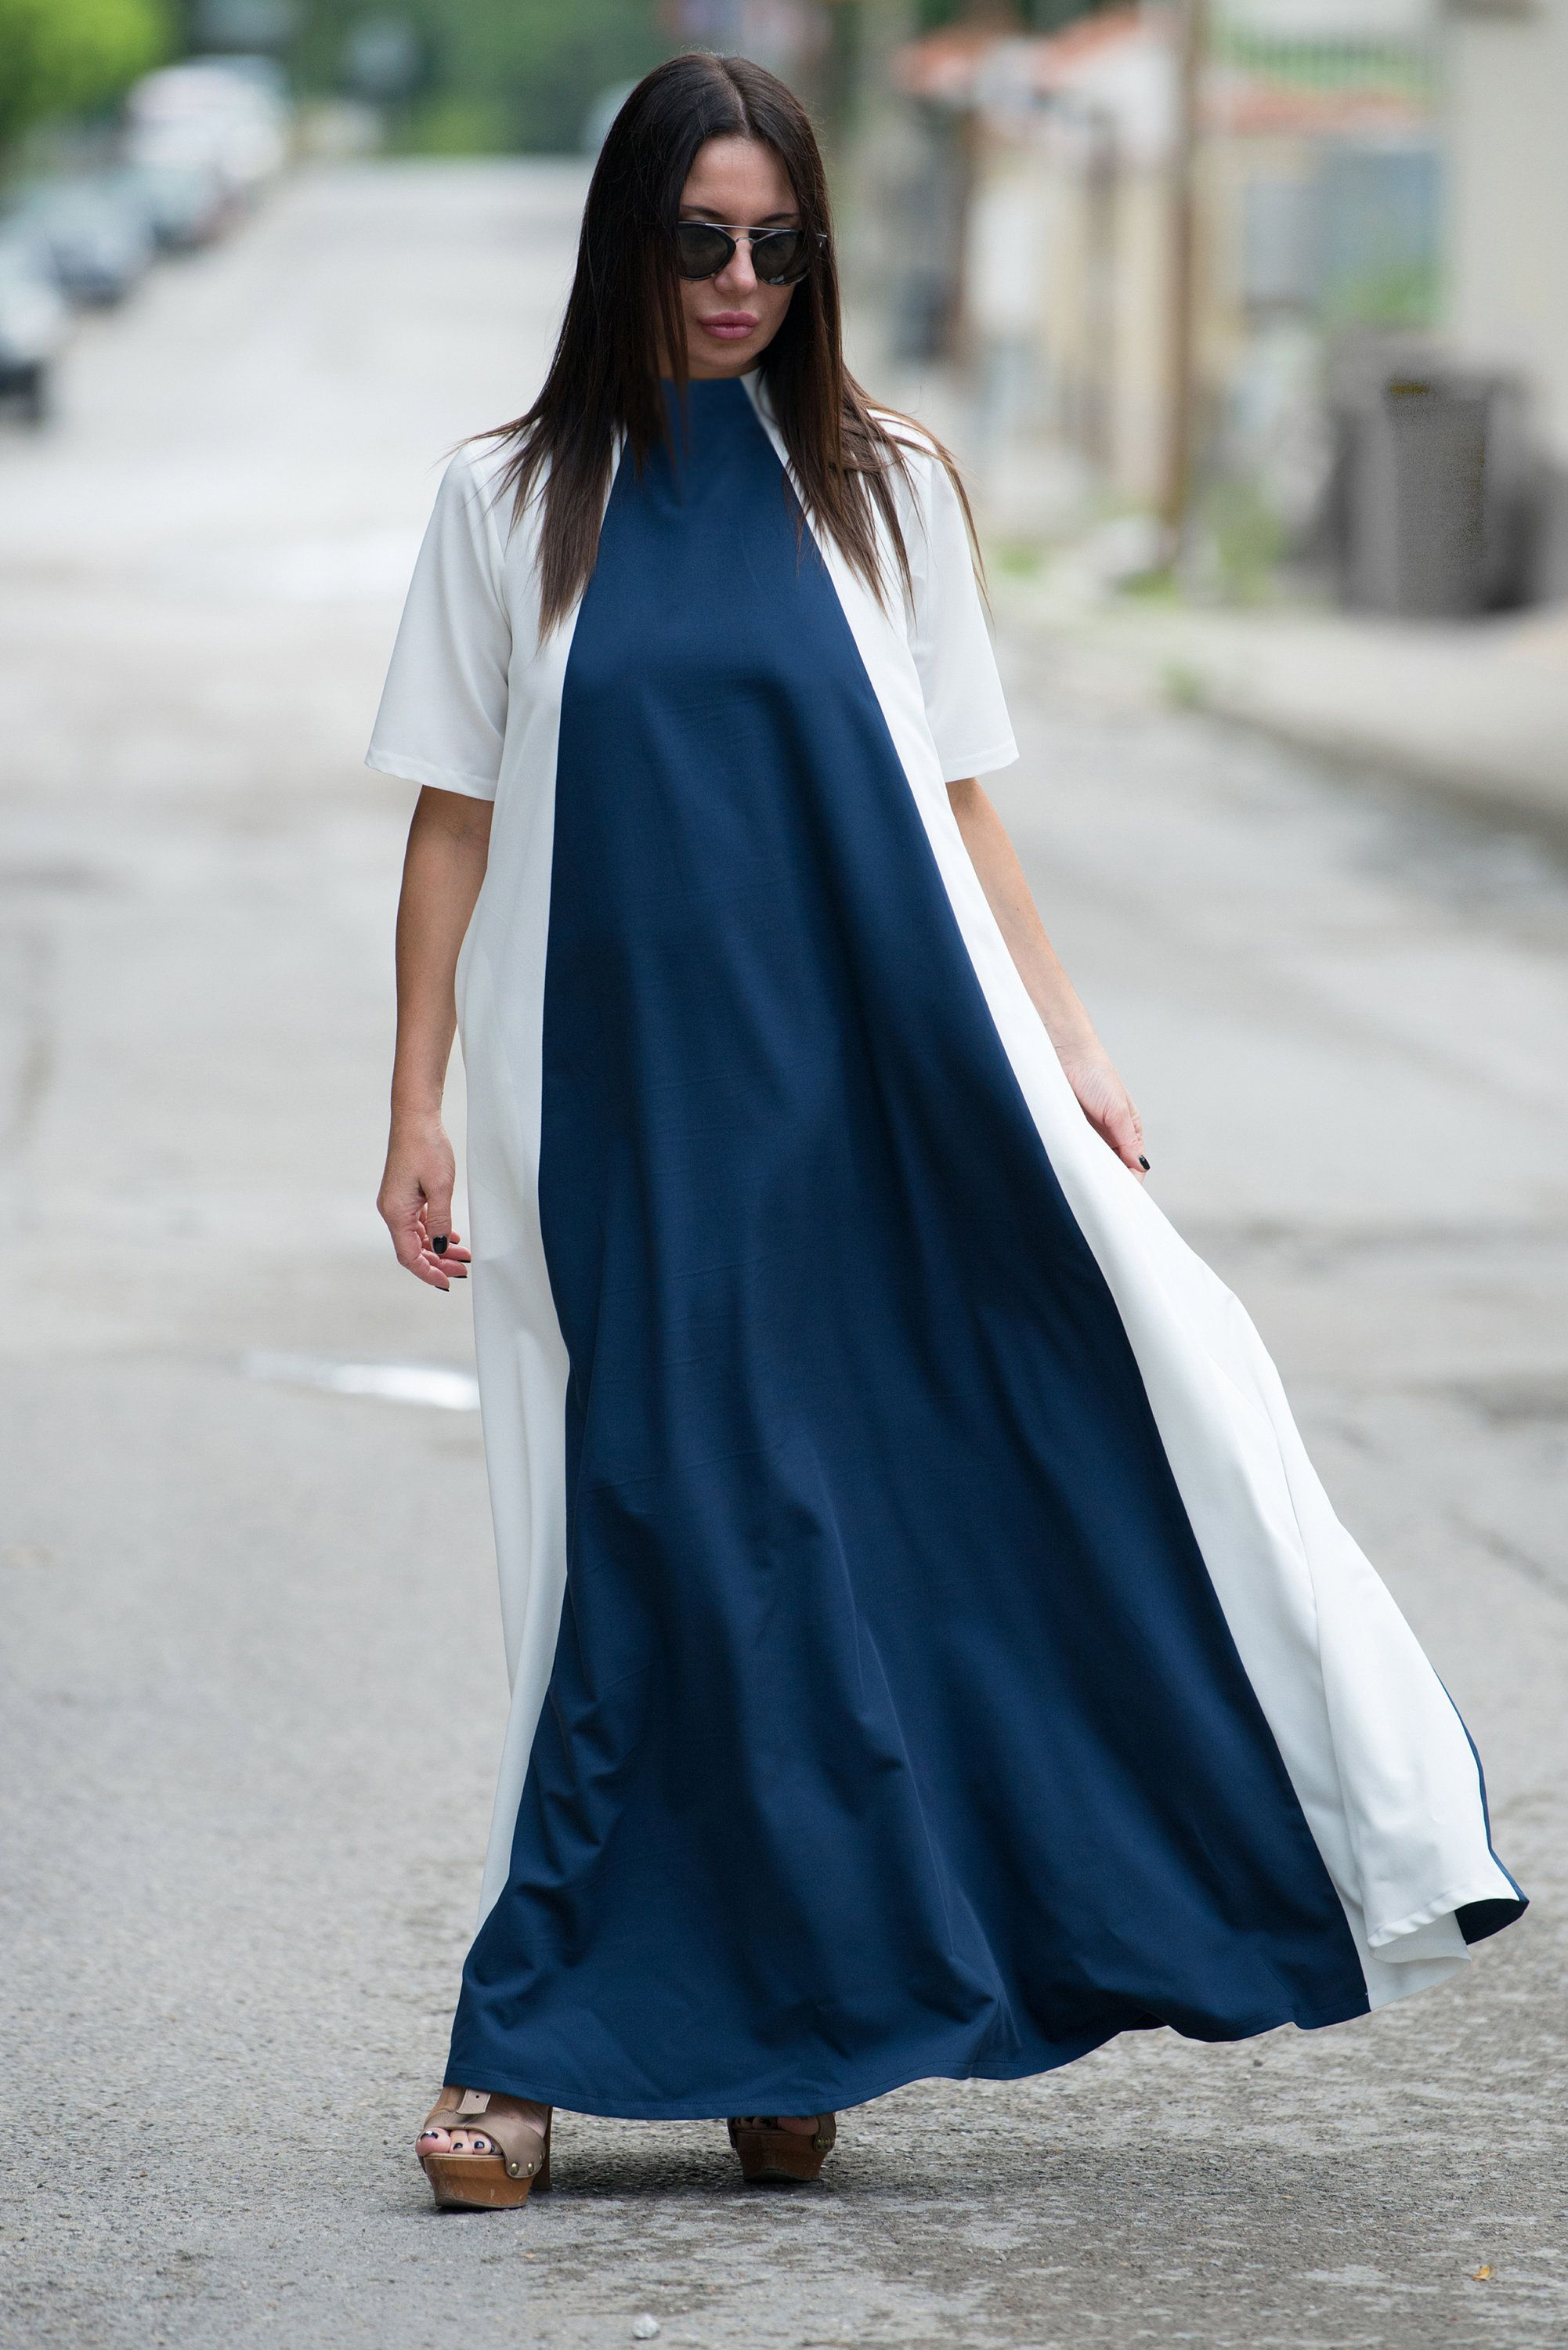 Woman maxi dress formal dress white summer dress blue long dress